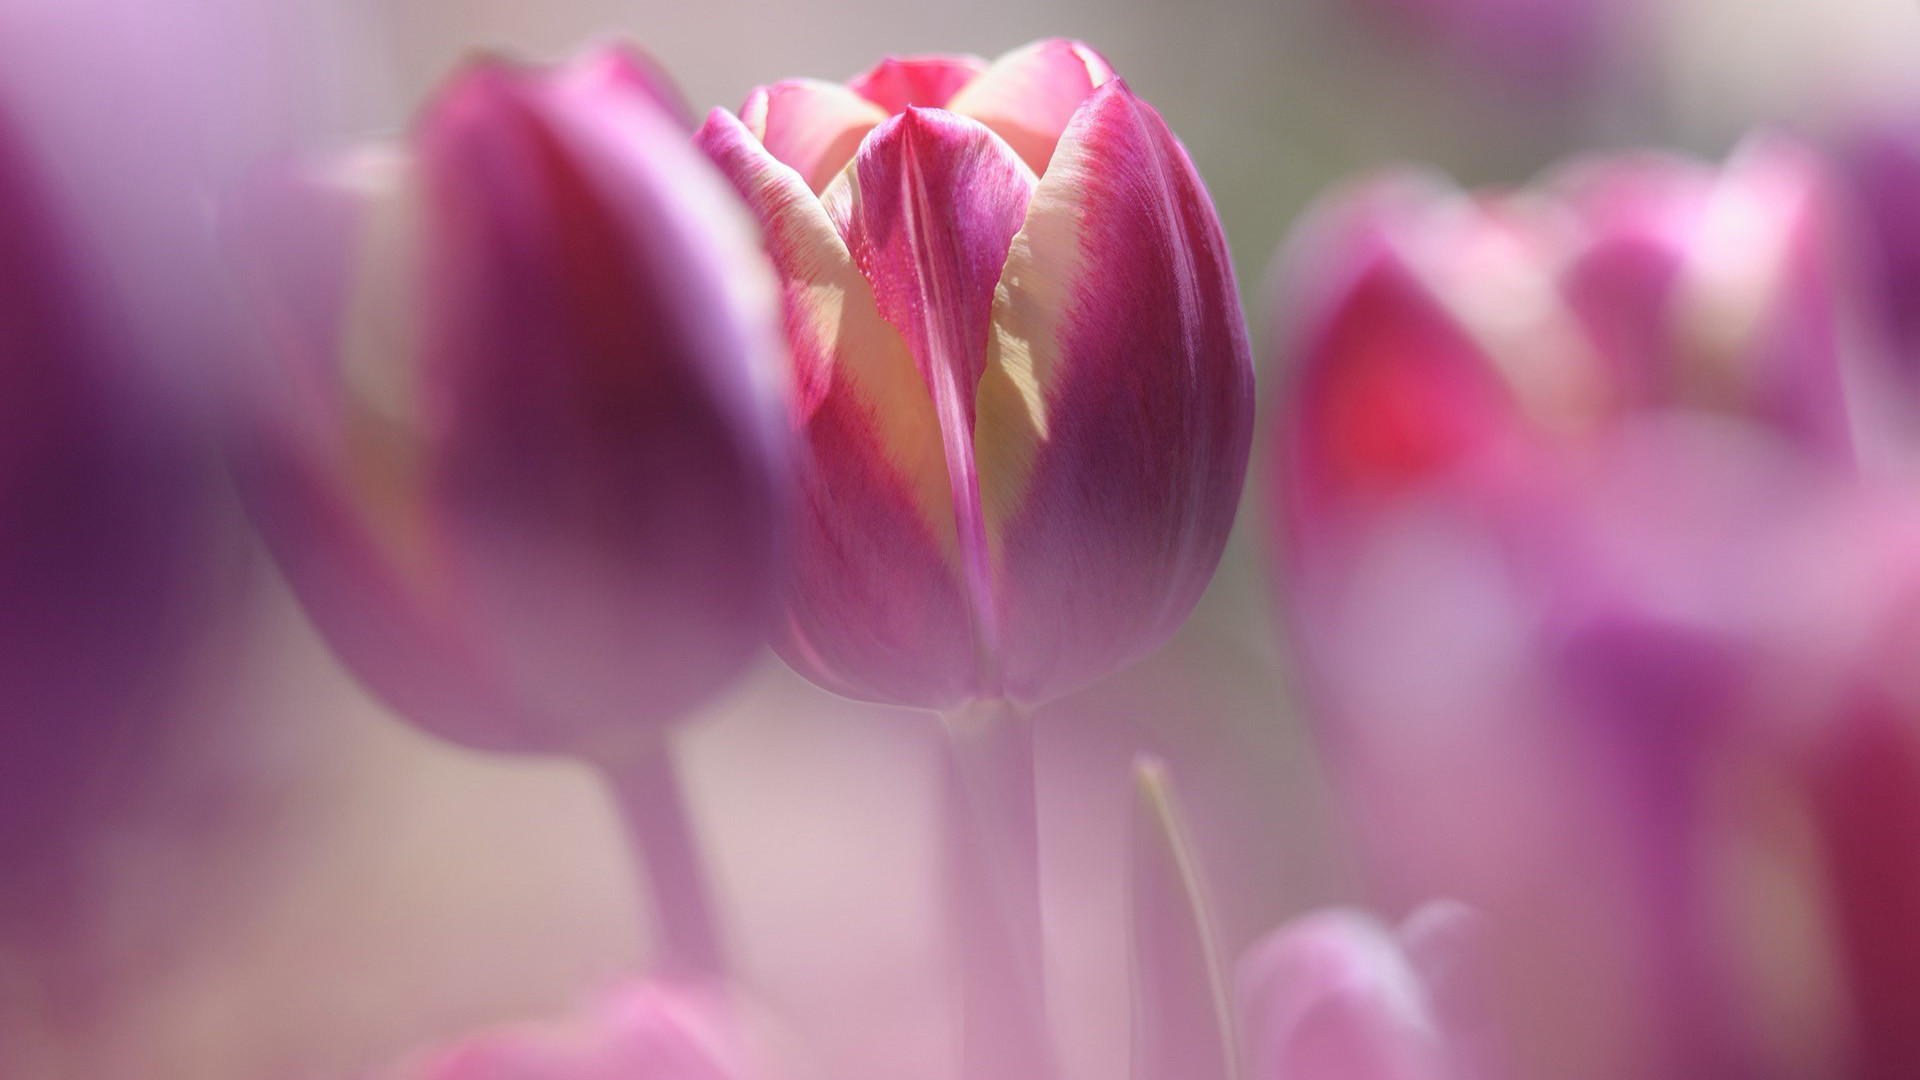 Pink Tulips Wallpaper 68 Images